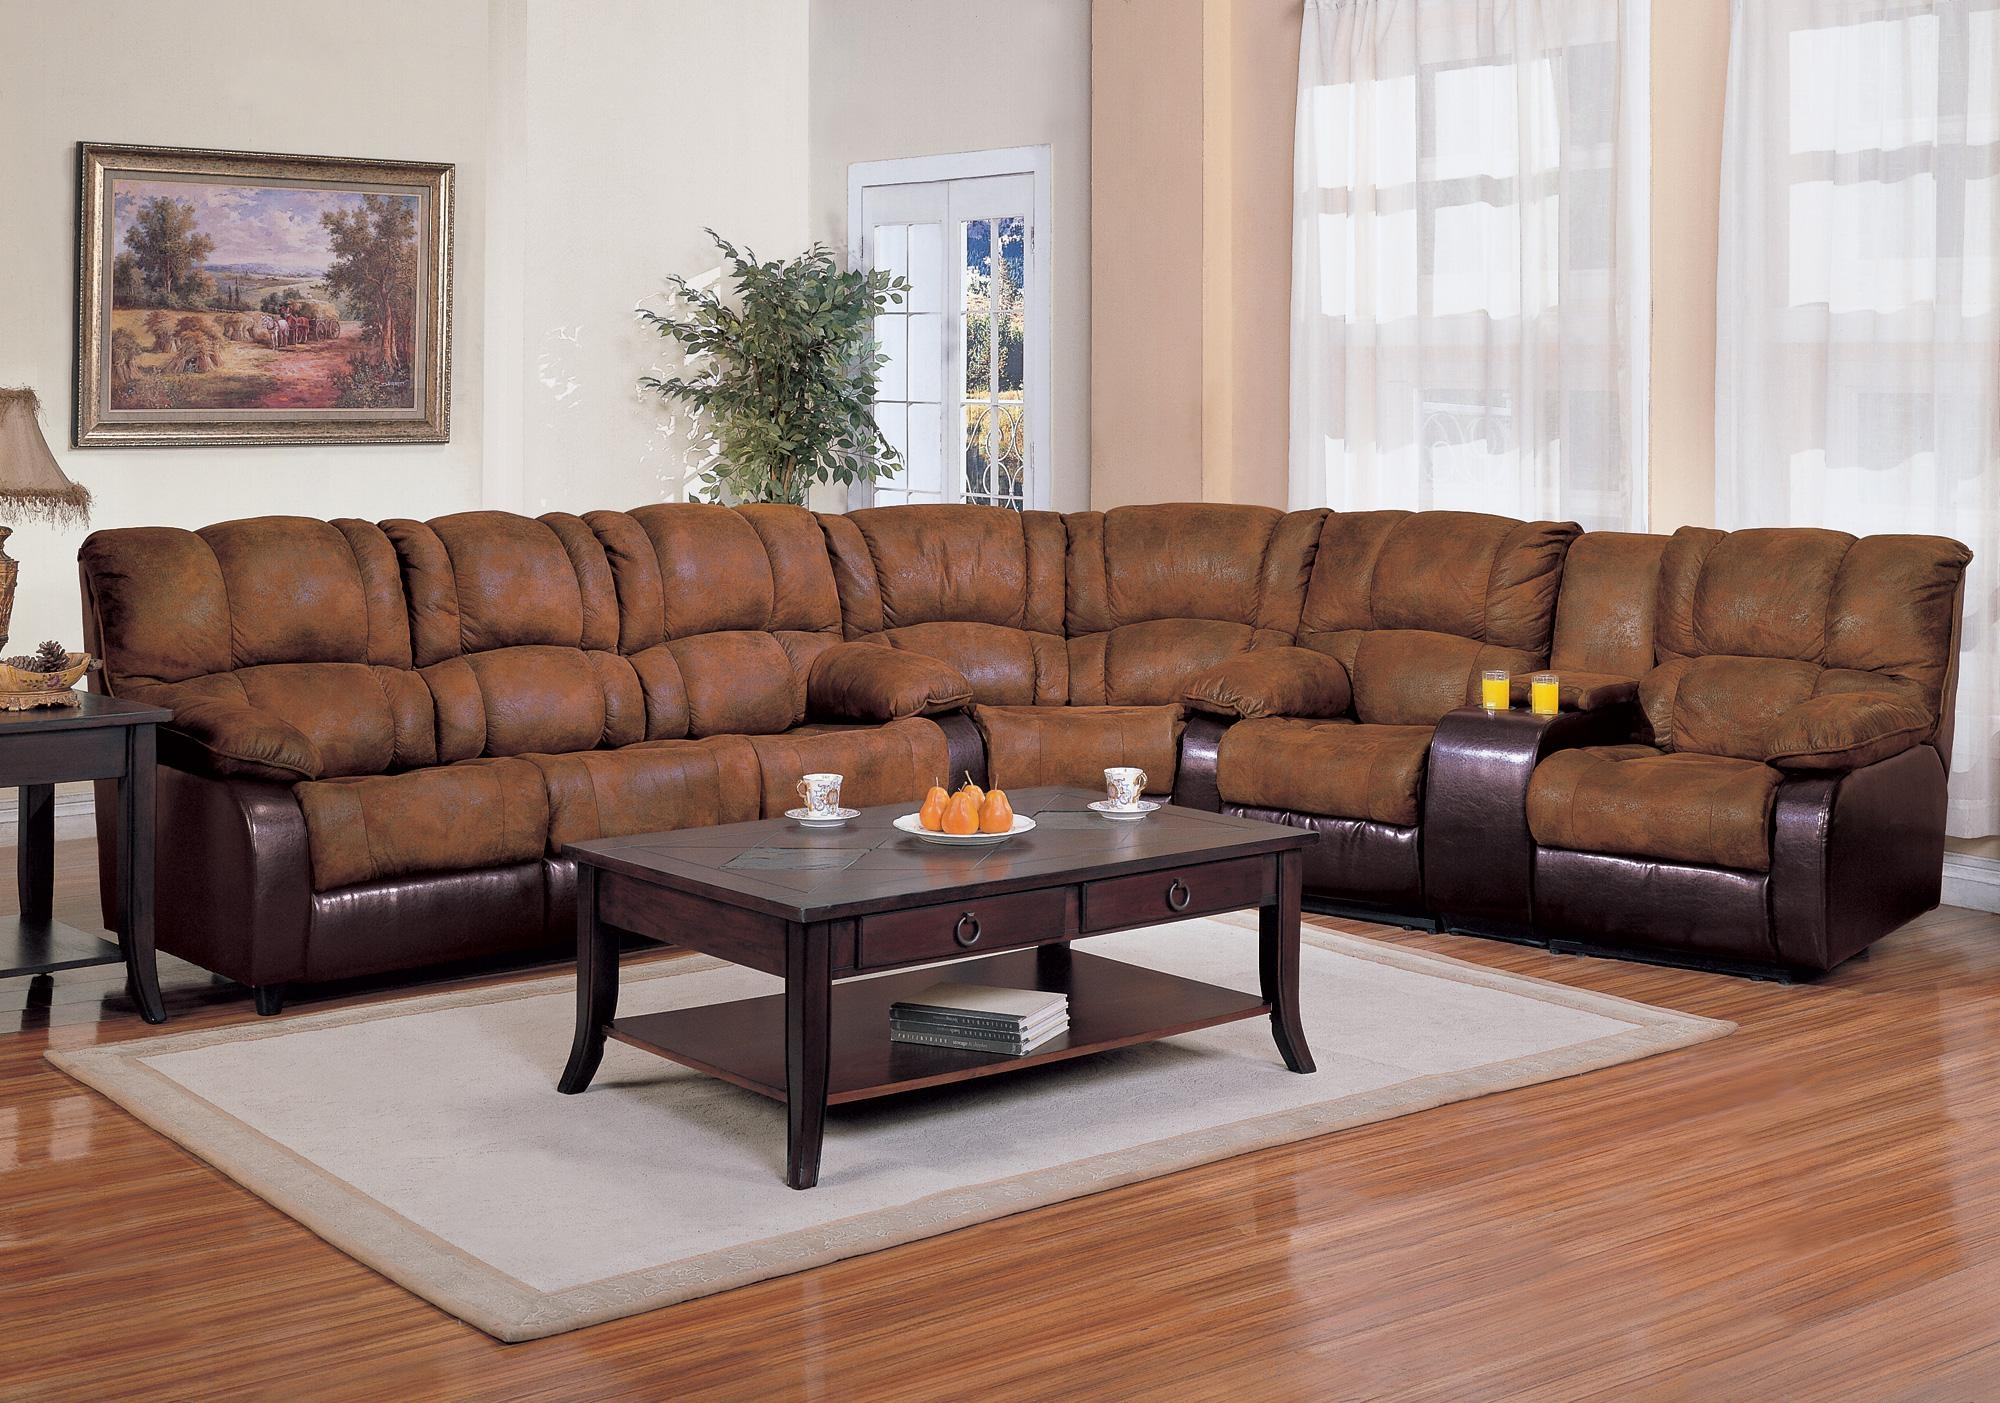 ▻ Sofa Bed : Welfare Convertible Sectional Sofa Bed With Sleeper Recliner Sectional (View 11 of 20)